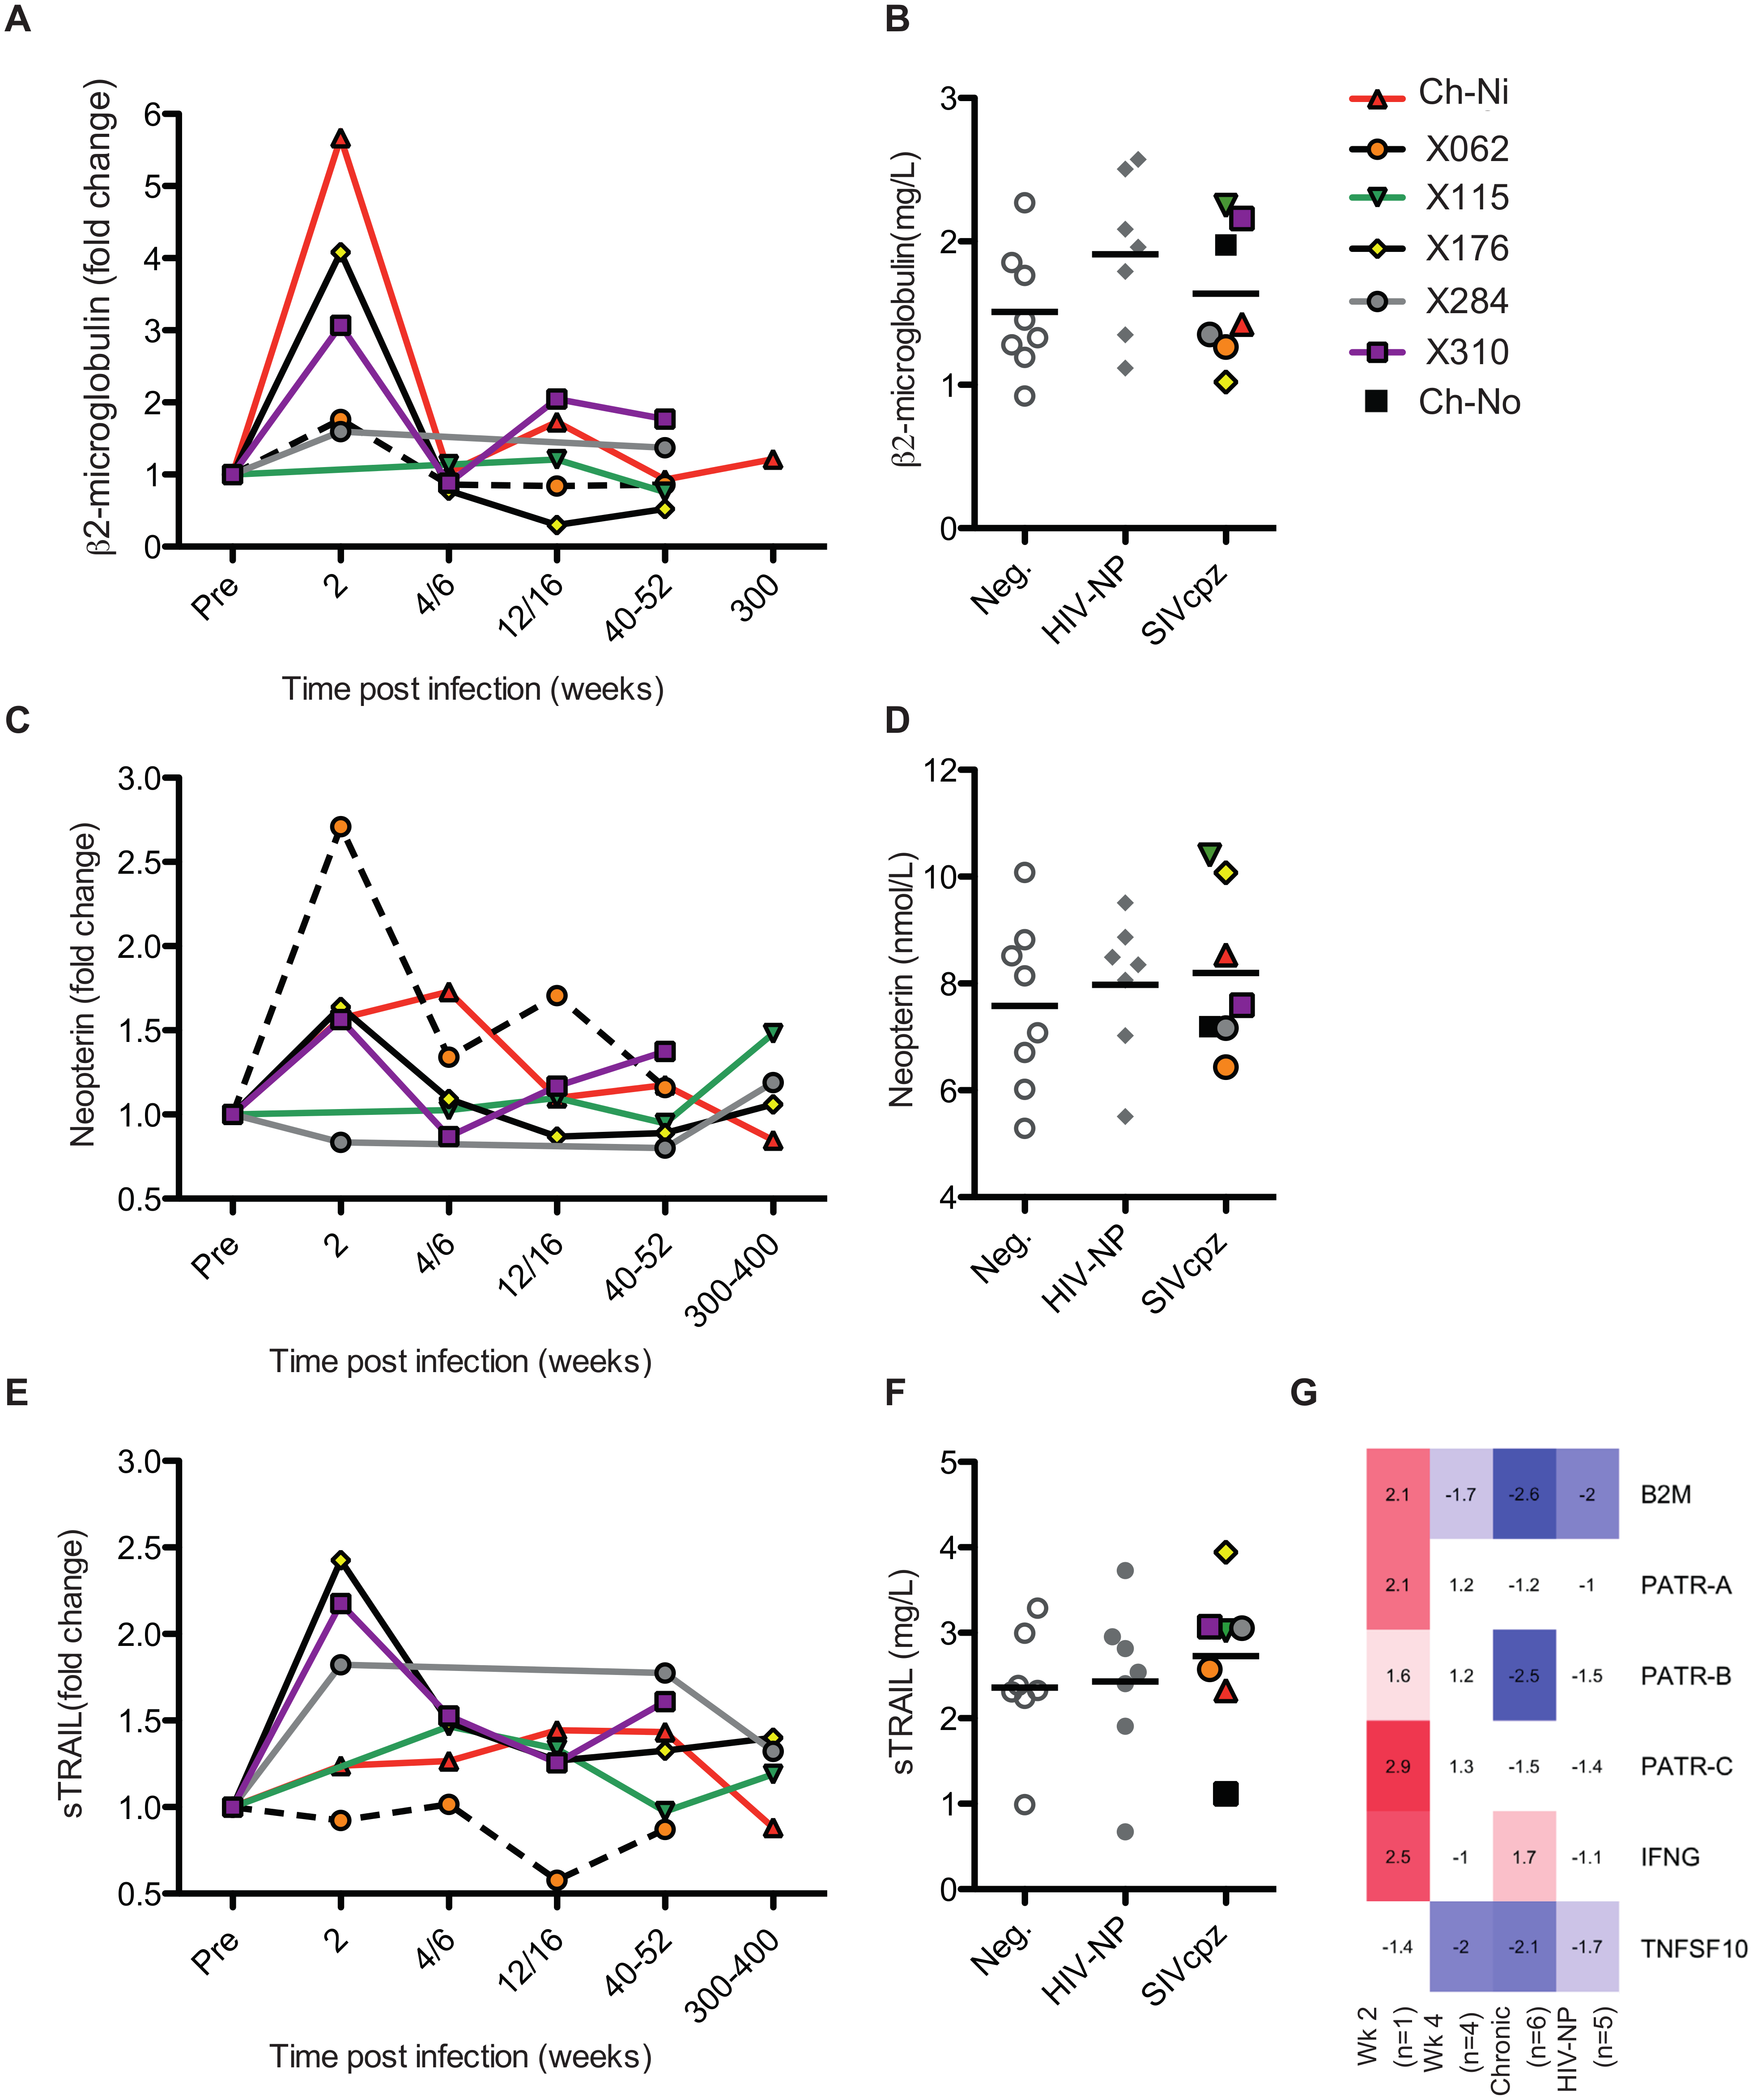 Soluble markers of immune activation in the plasma of SIVcpz infected chimpanzees.